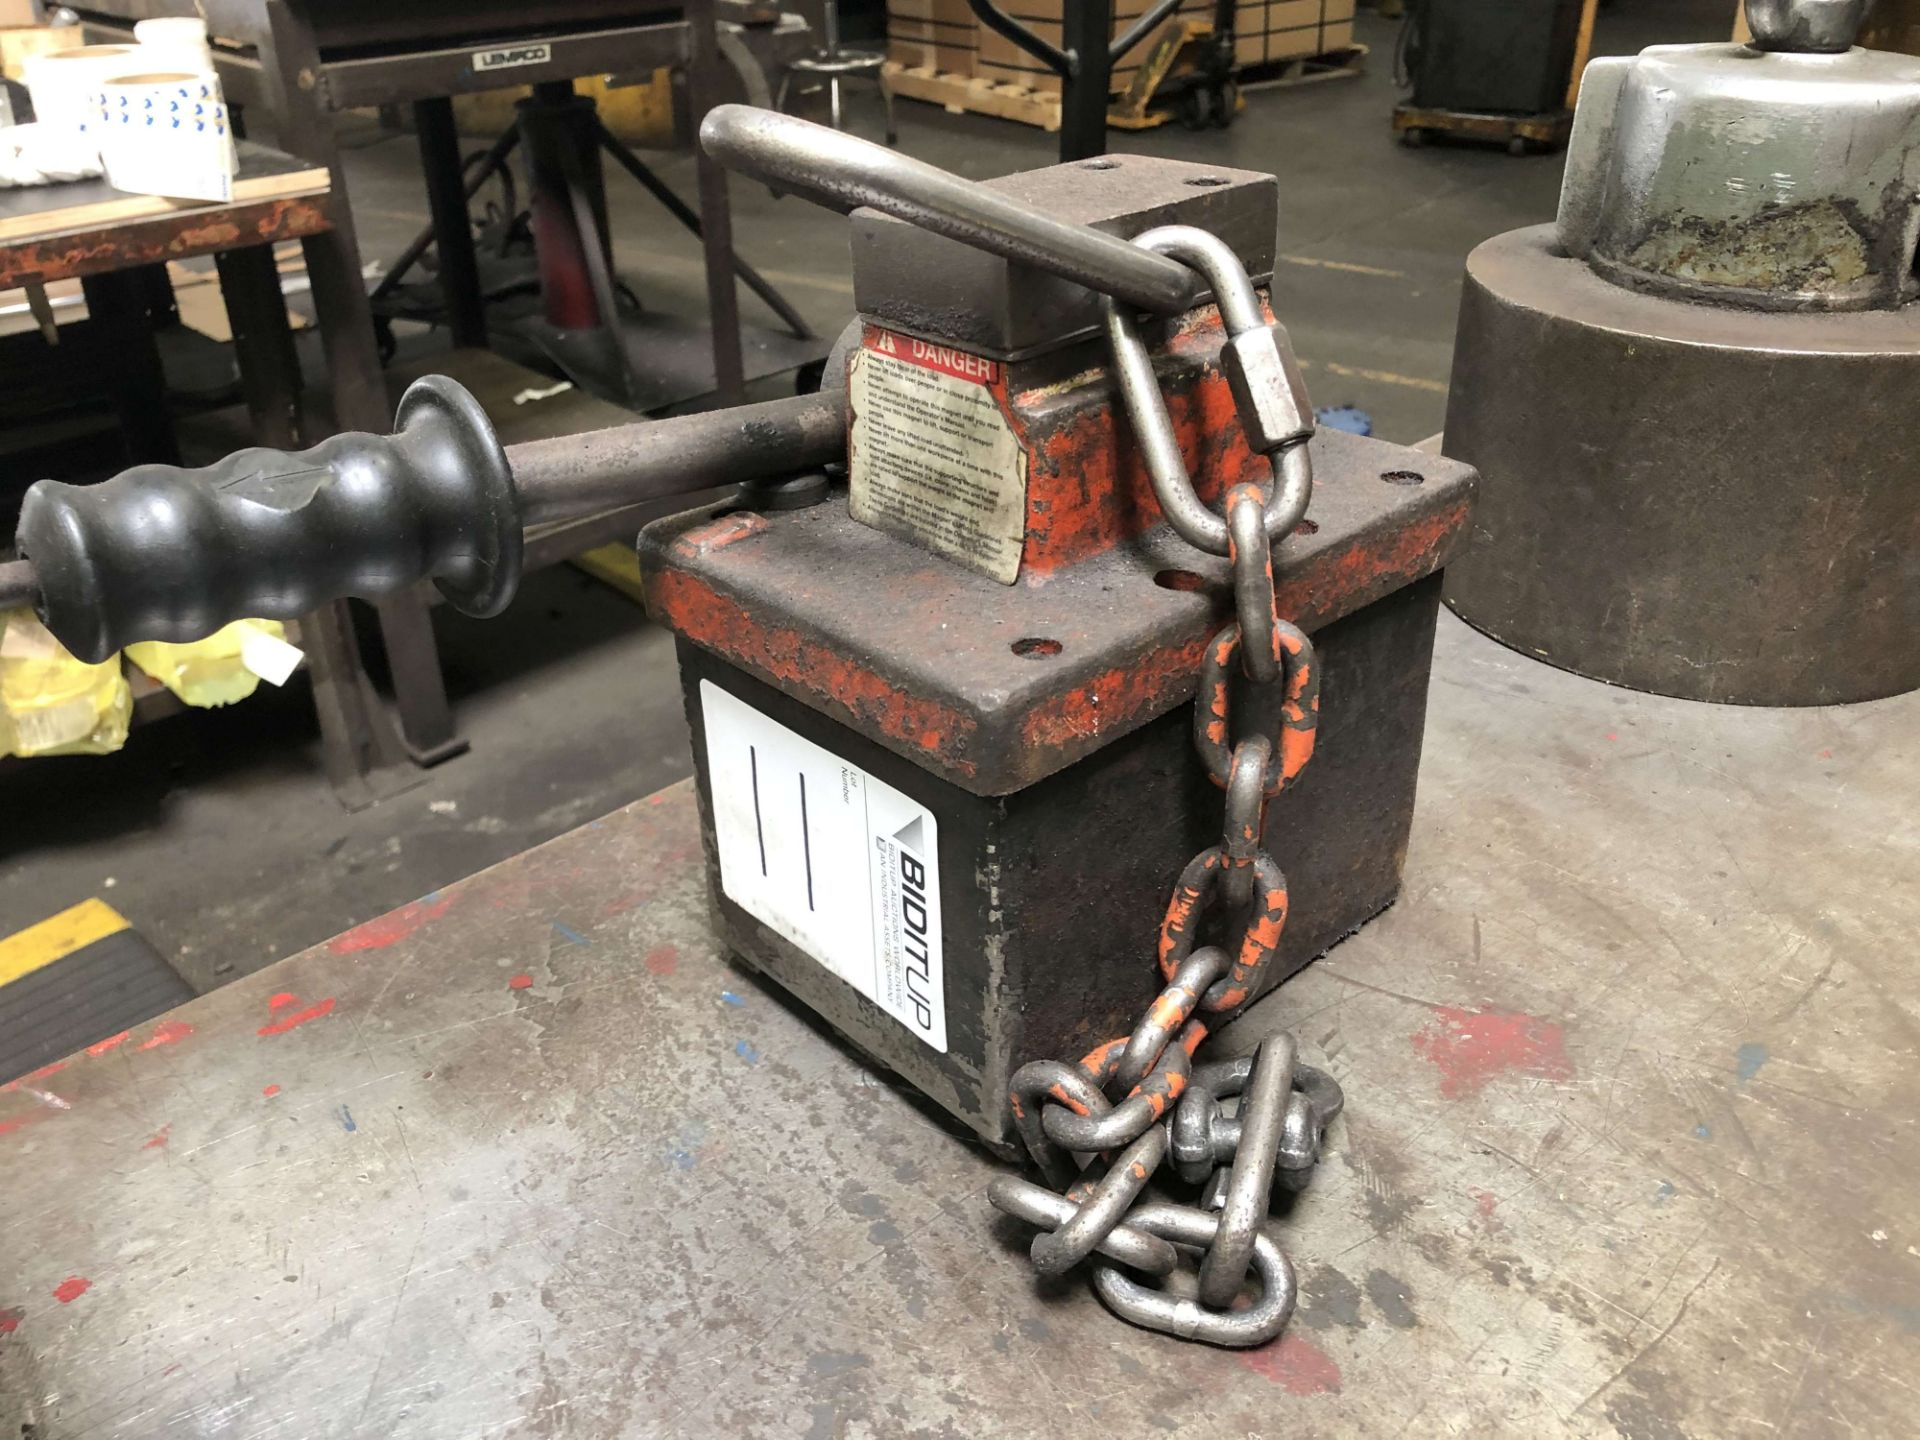 Lot 11 - OS Walker CM-1 Toter Permanent Lift Magnet, Rated Lift Capacity: 0-1,000 Lbs, Magnet Weight: 62